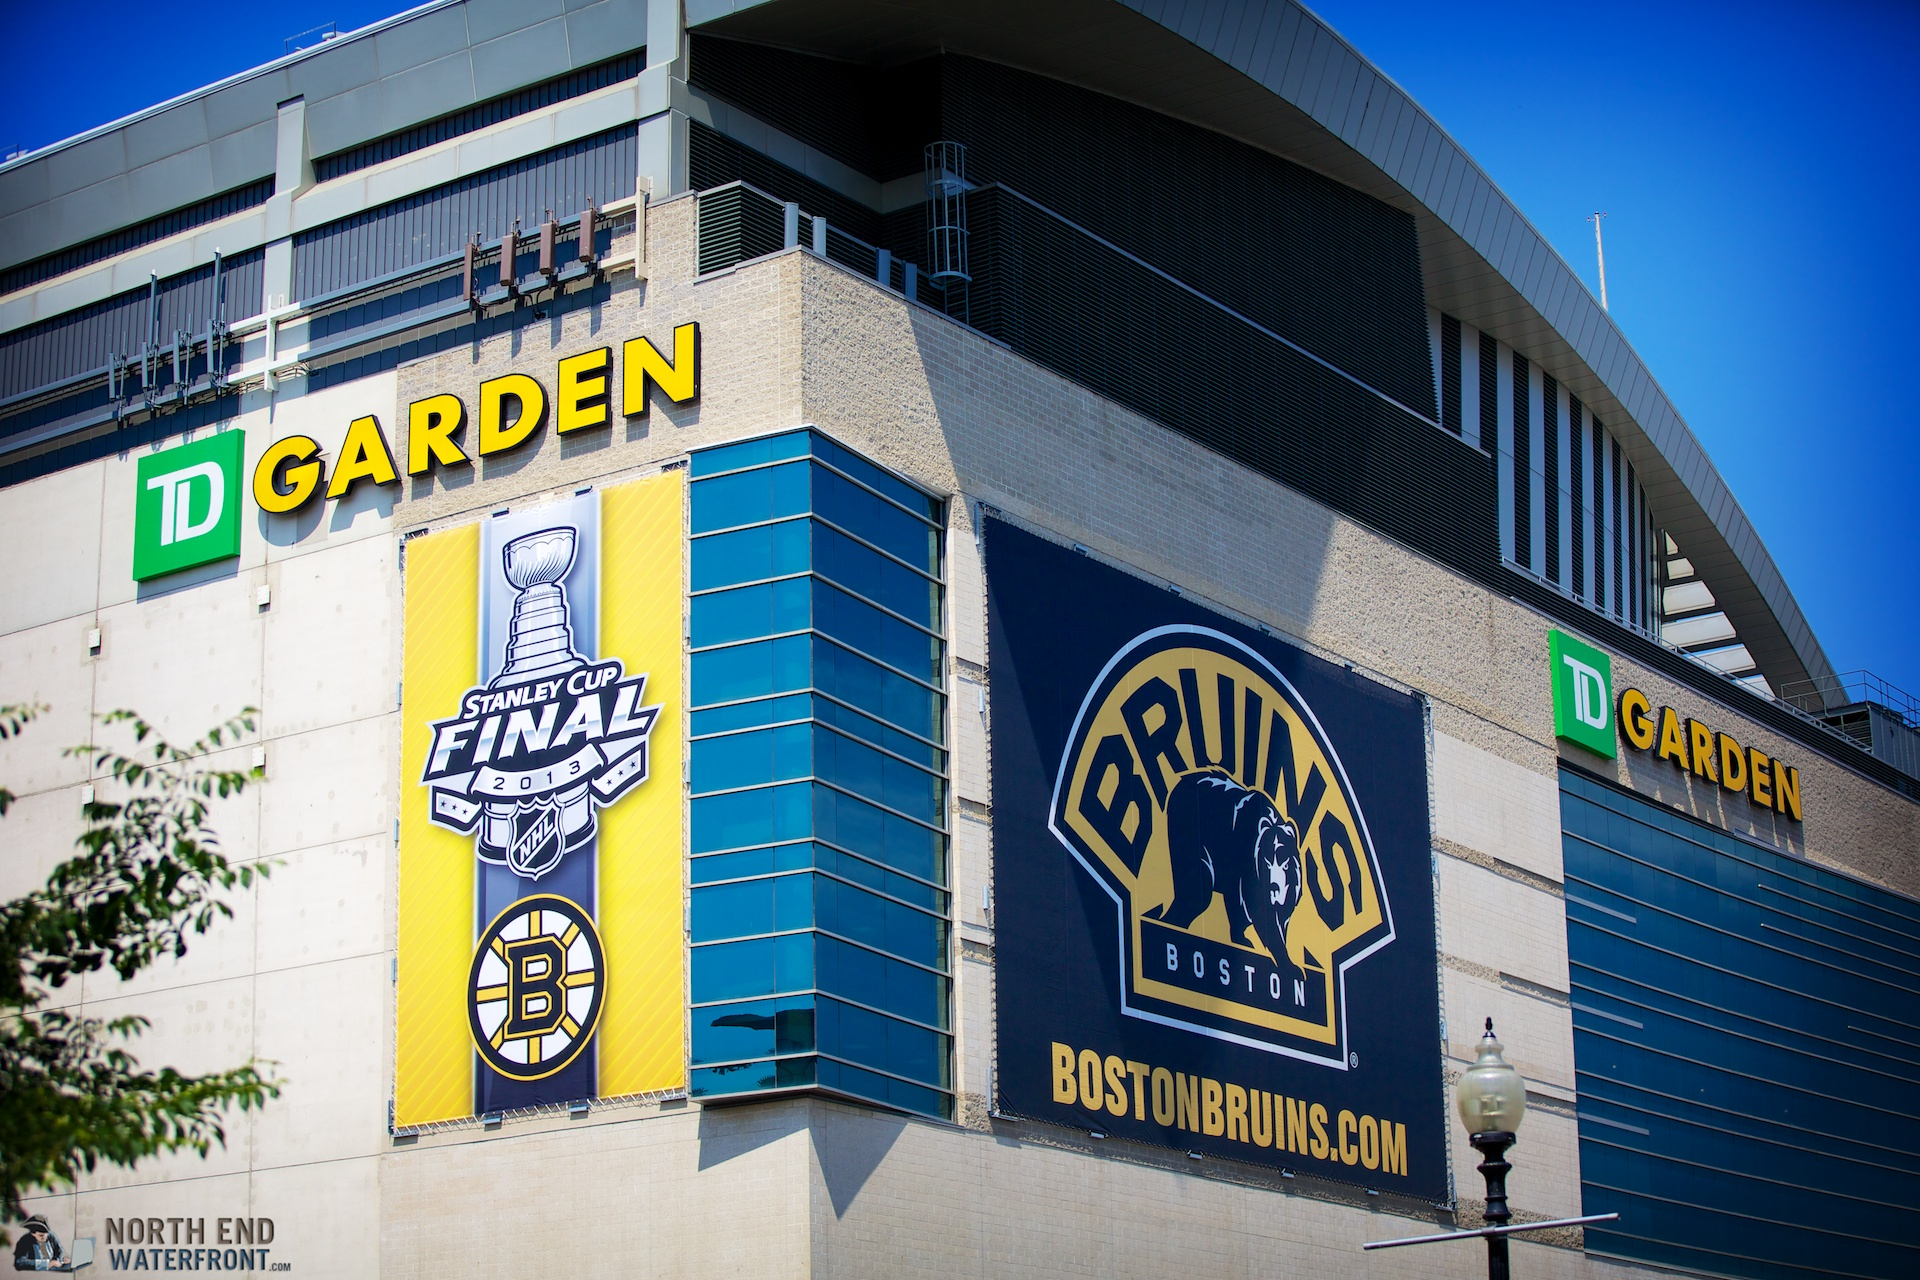 Bruins Send Off at TD Garden for Game 5 of Stanley Cup Finals in